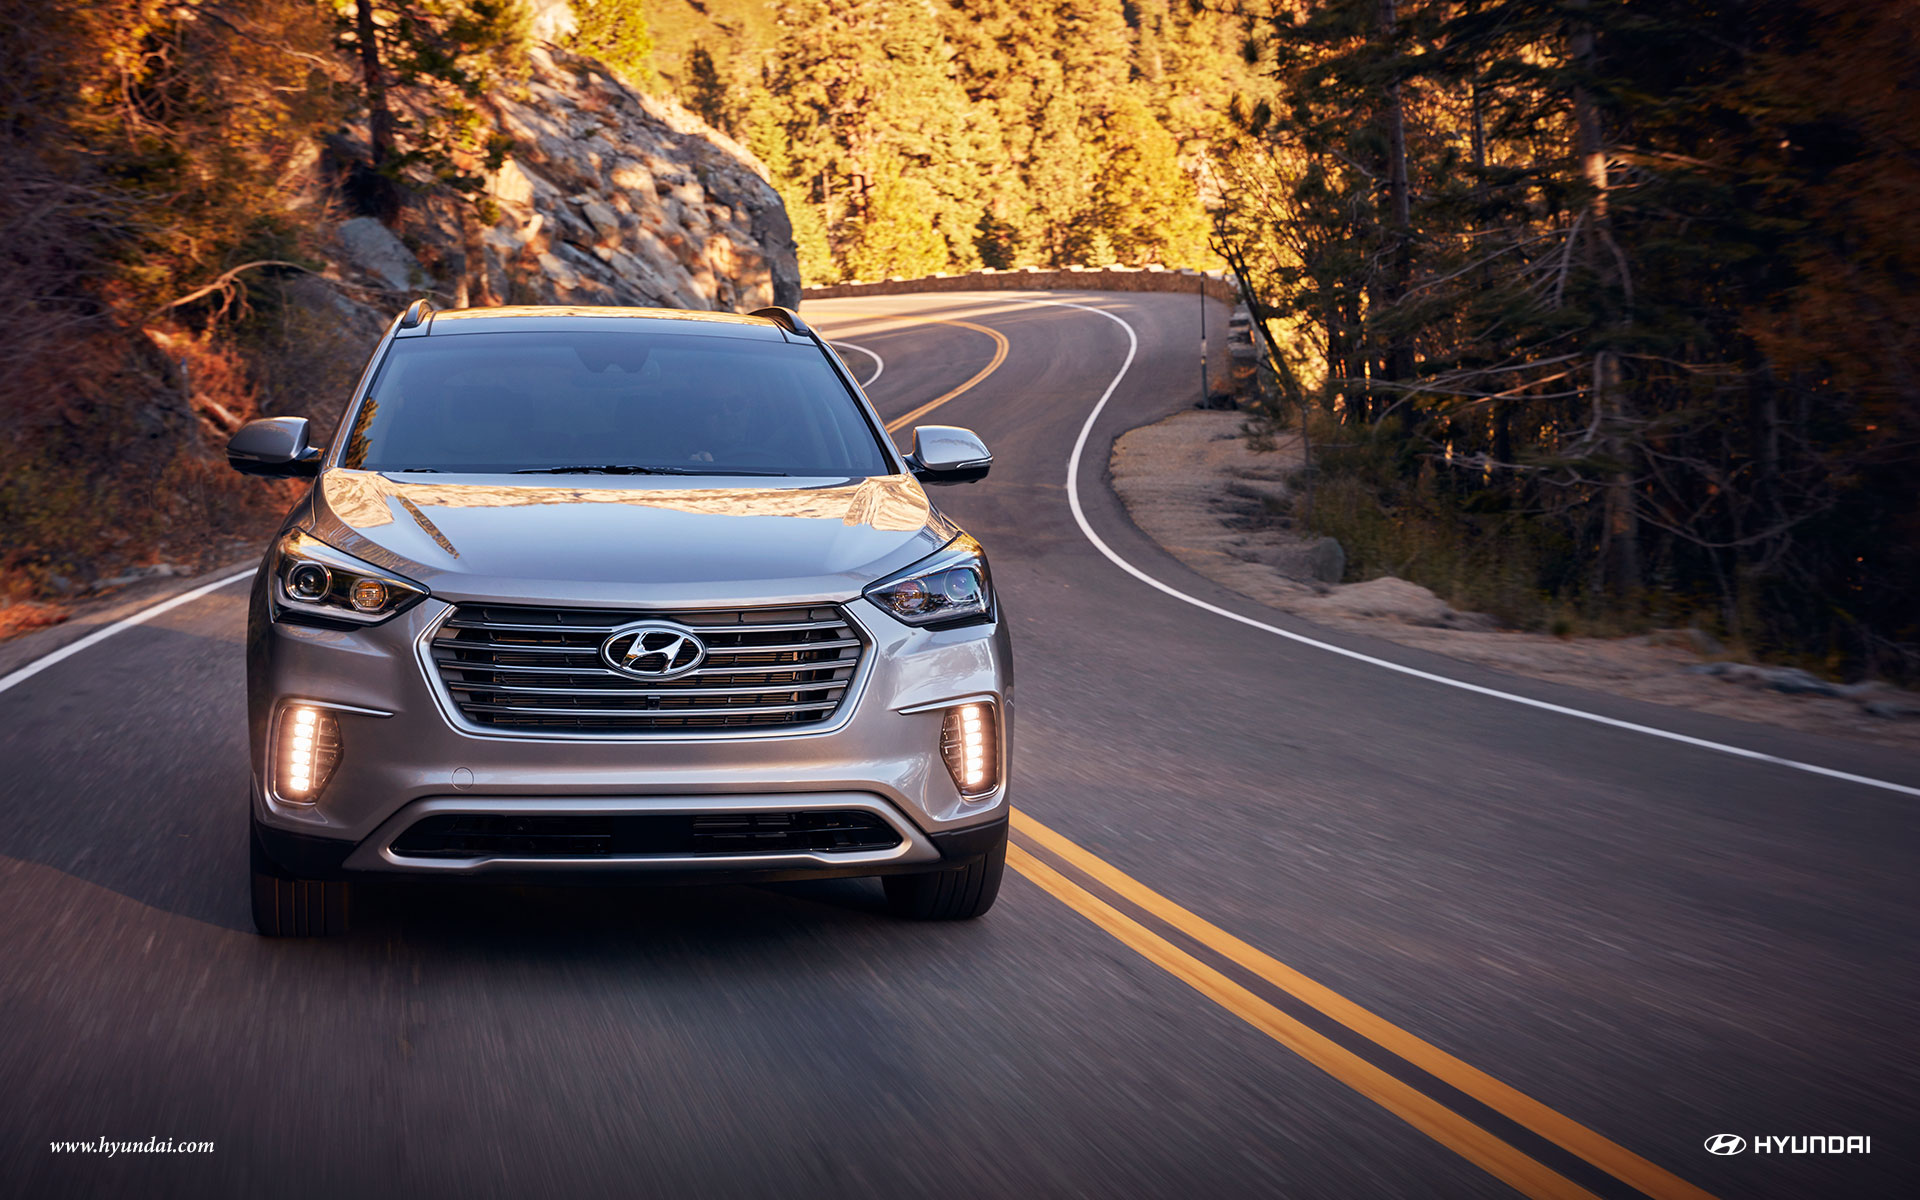 Englewood CO Area - Hyundai repair - 2018 Hyundai Santa Fe